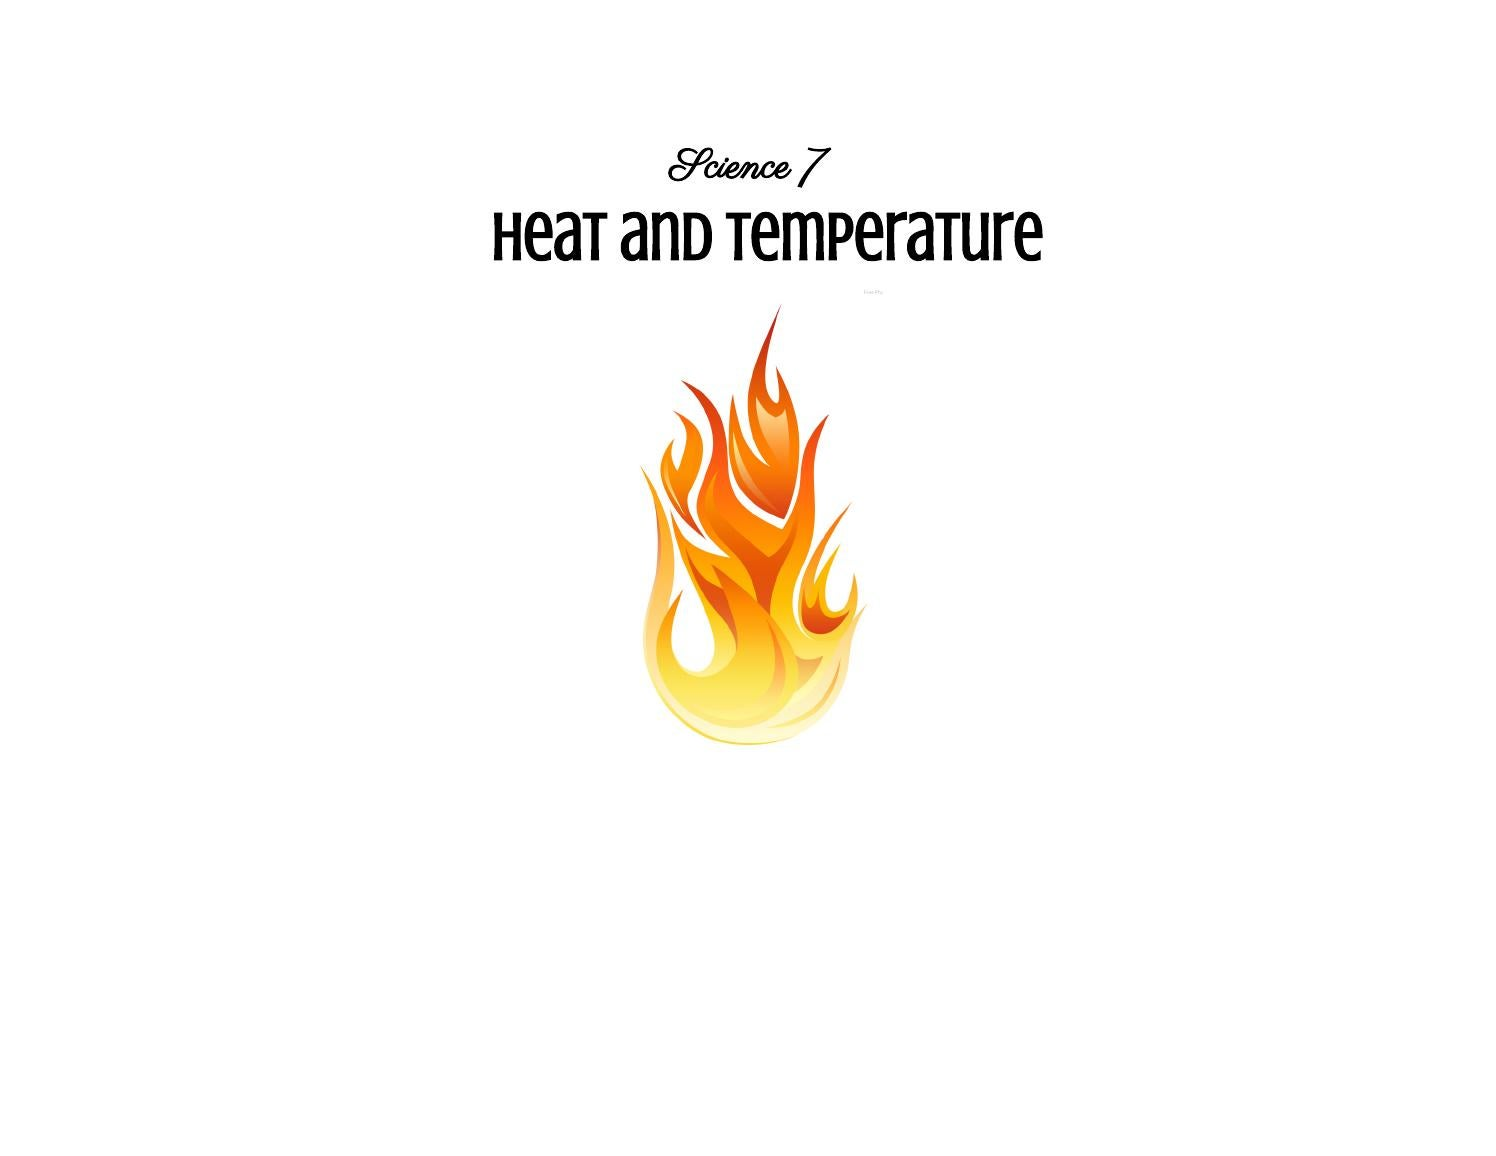 worksheet Heat And Its Measurement Worksheet Answers science unit plan grade 7 heat and temperature by laura friesen issuu